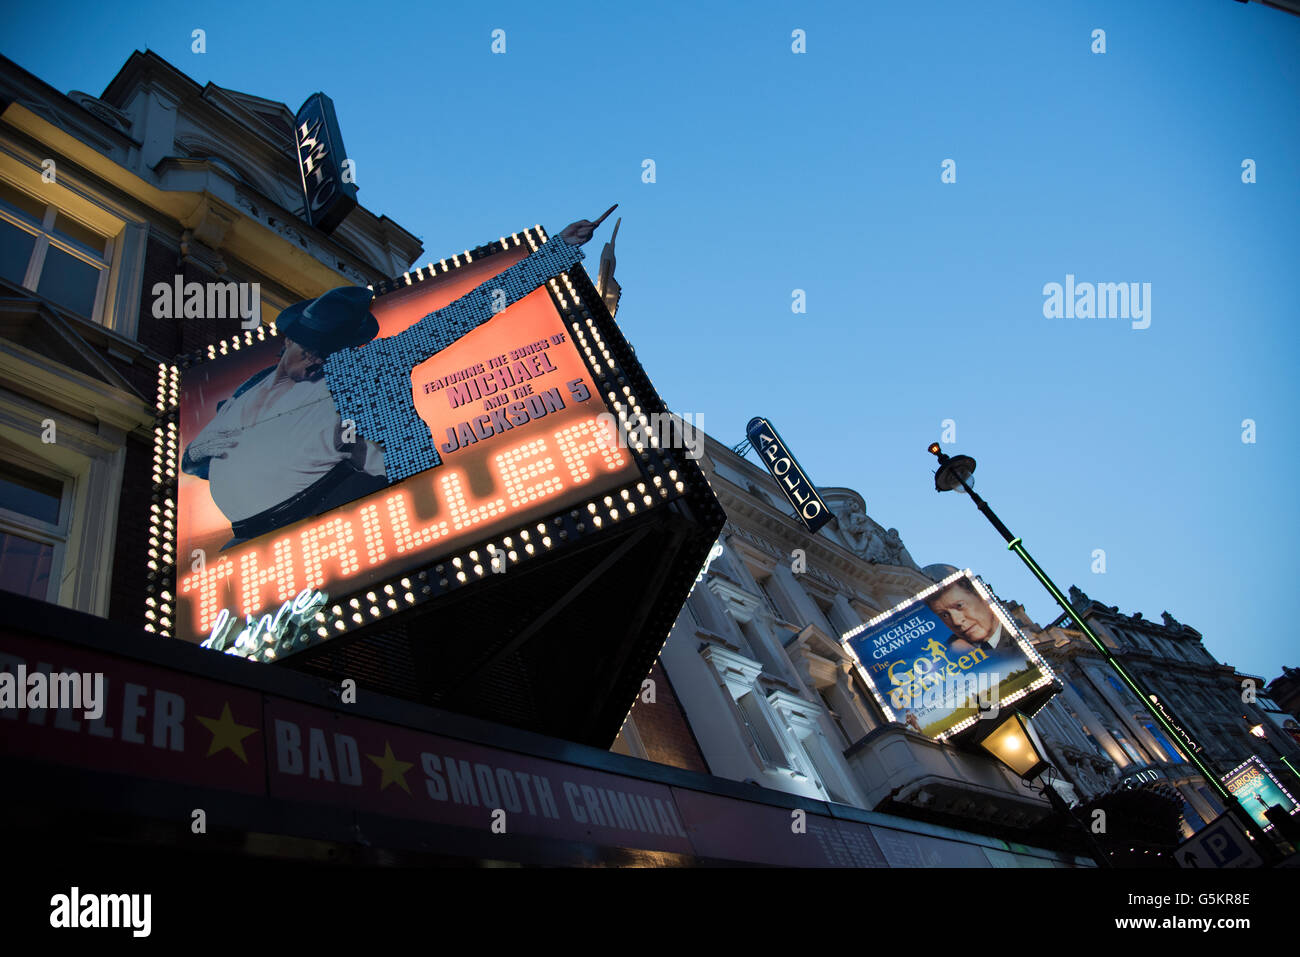 Thriller Live & The Go Between Showings at Lyric & Apollo Theatres Respectively on Shafesbury Avenue, London - Stock Image